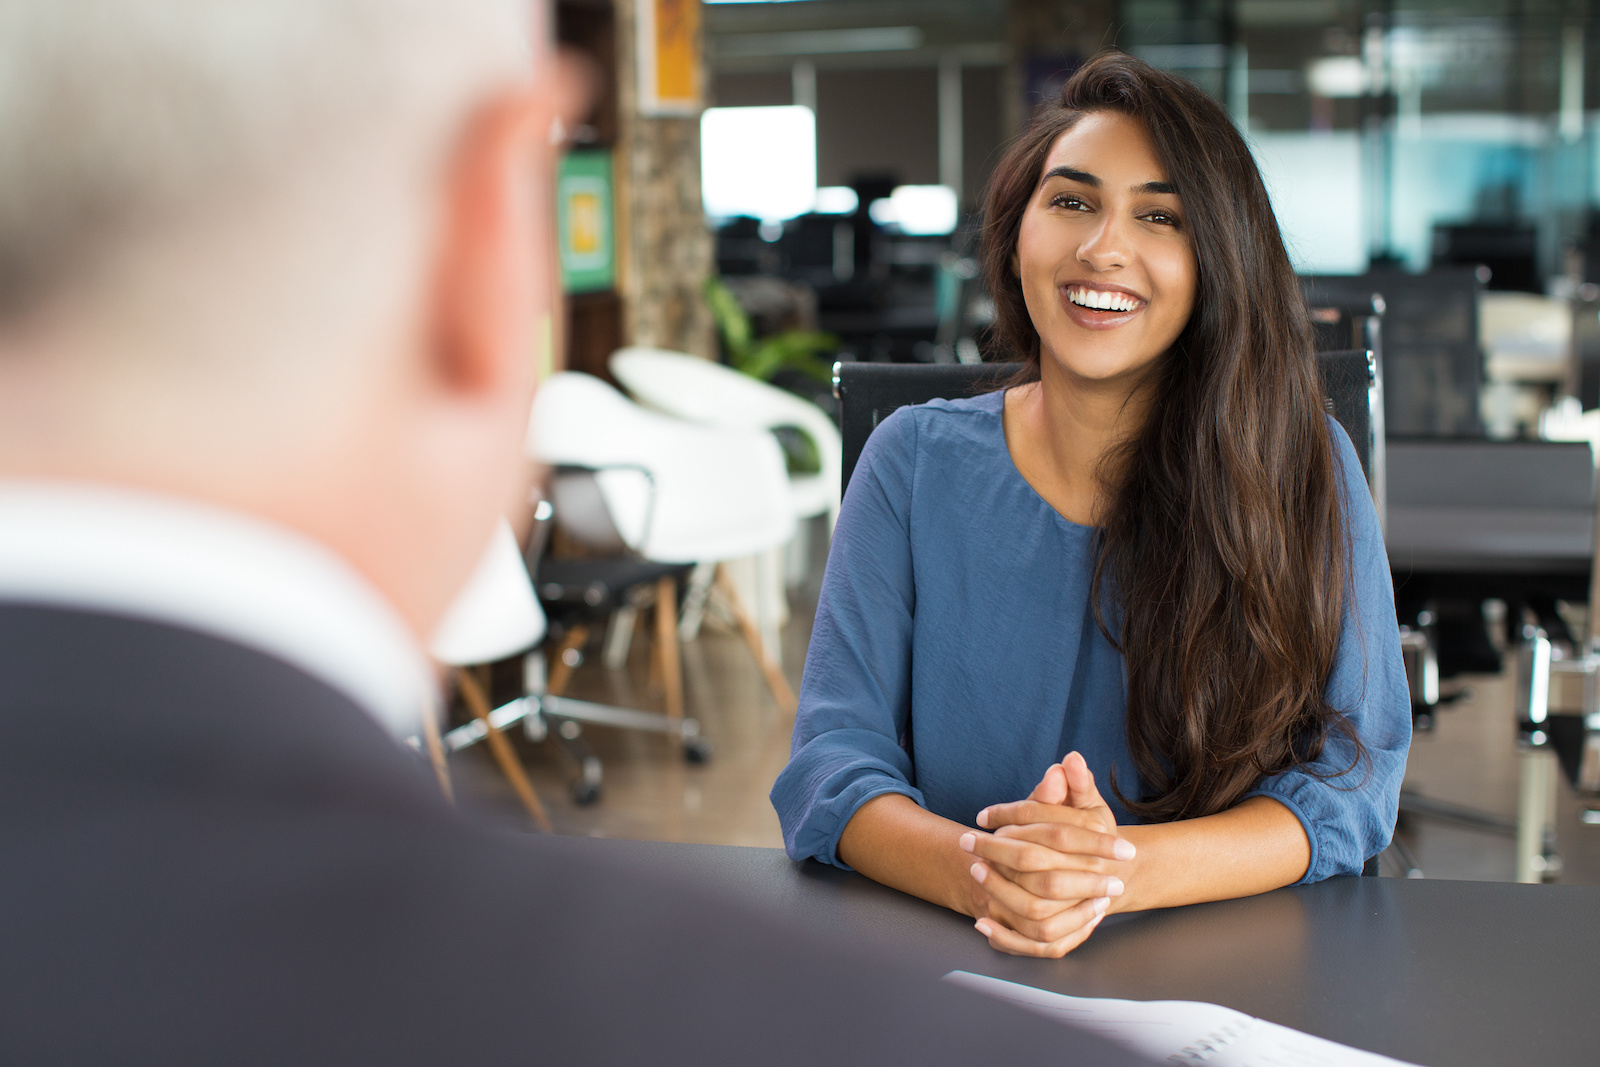 Intuit internship: woman smiling during an interview